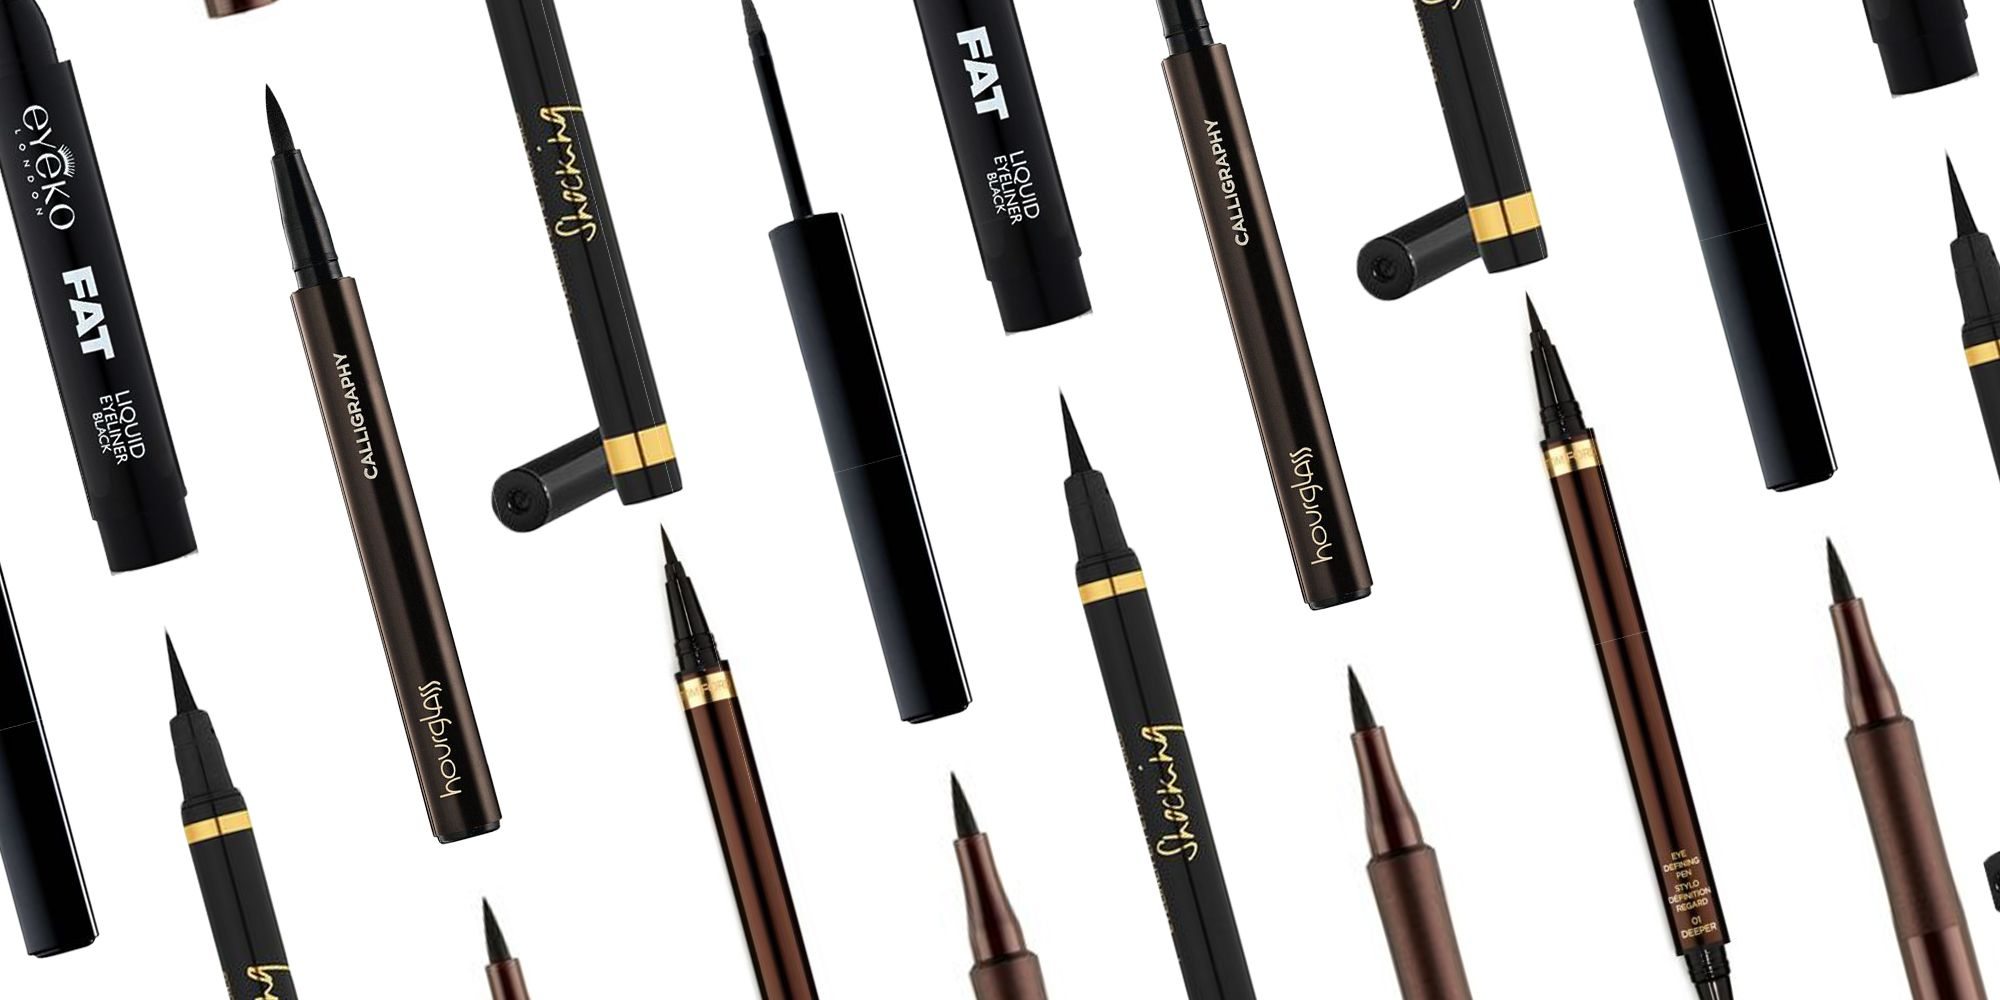 7 Liquid Eyeliners for Flawless Cat Eyes